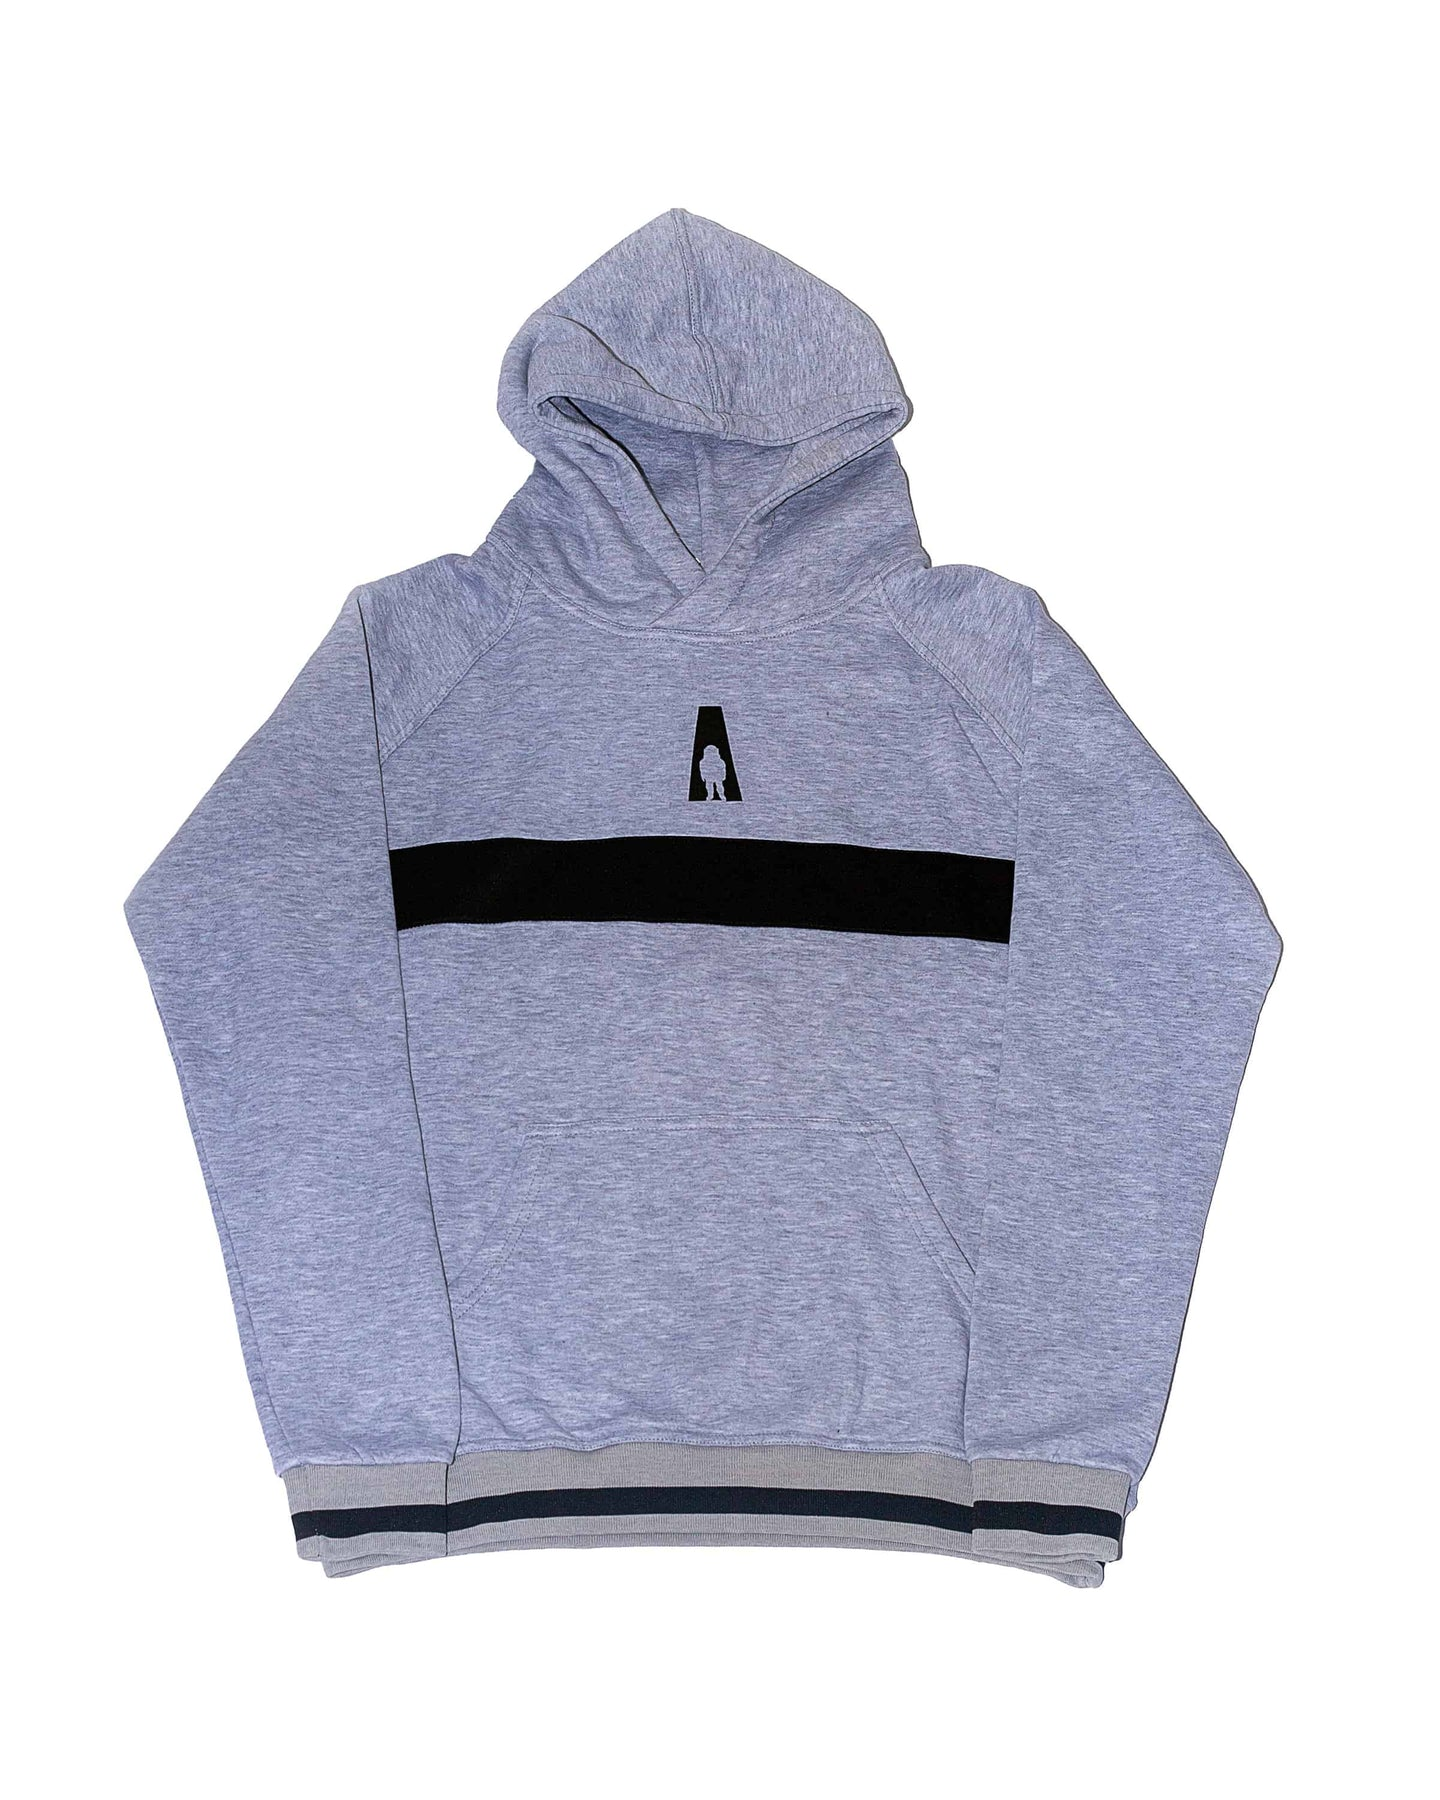 Moonwalker Hoodie | Grey - Apollo Originals